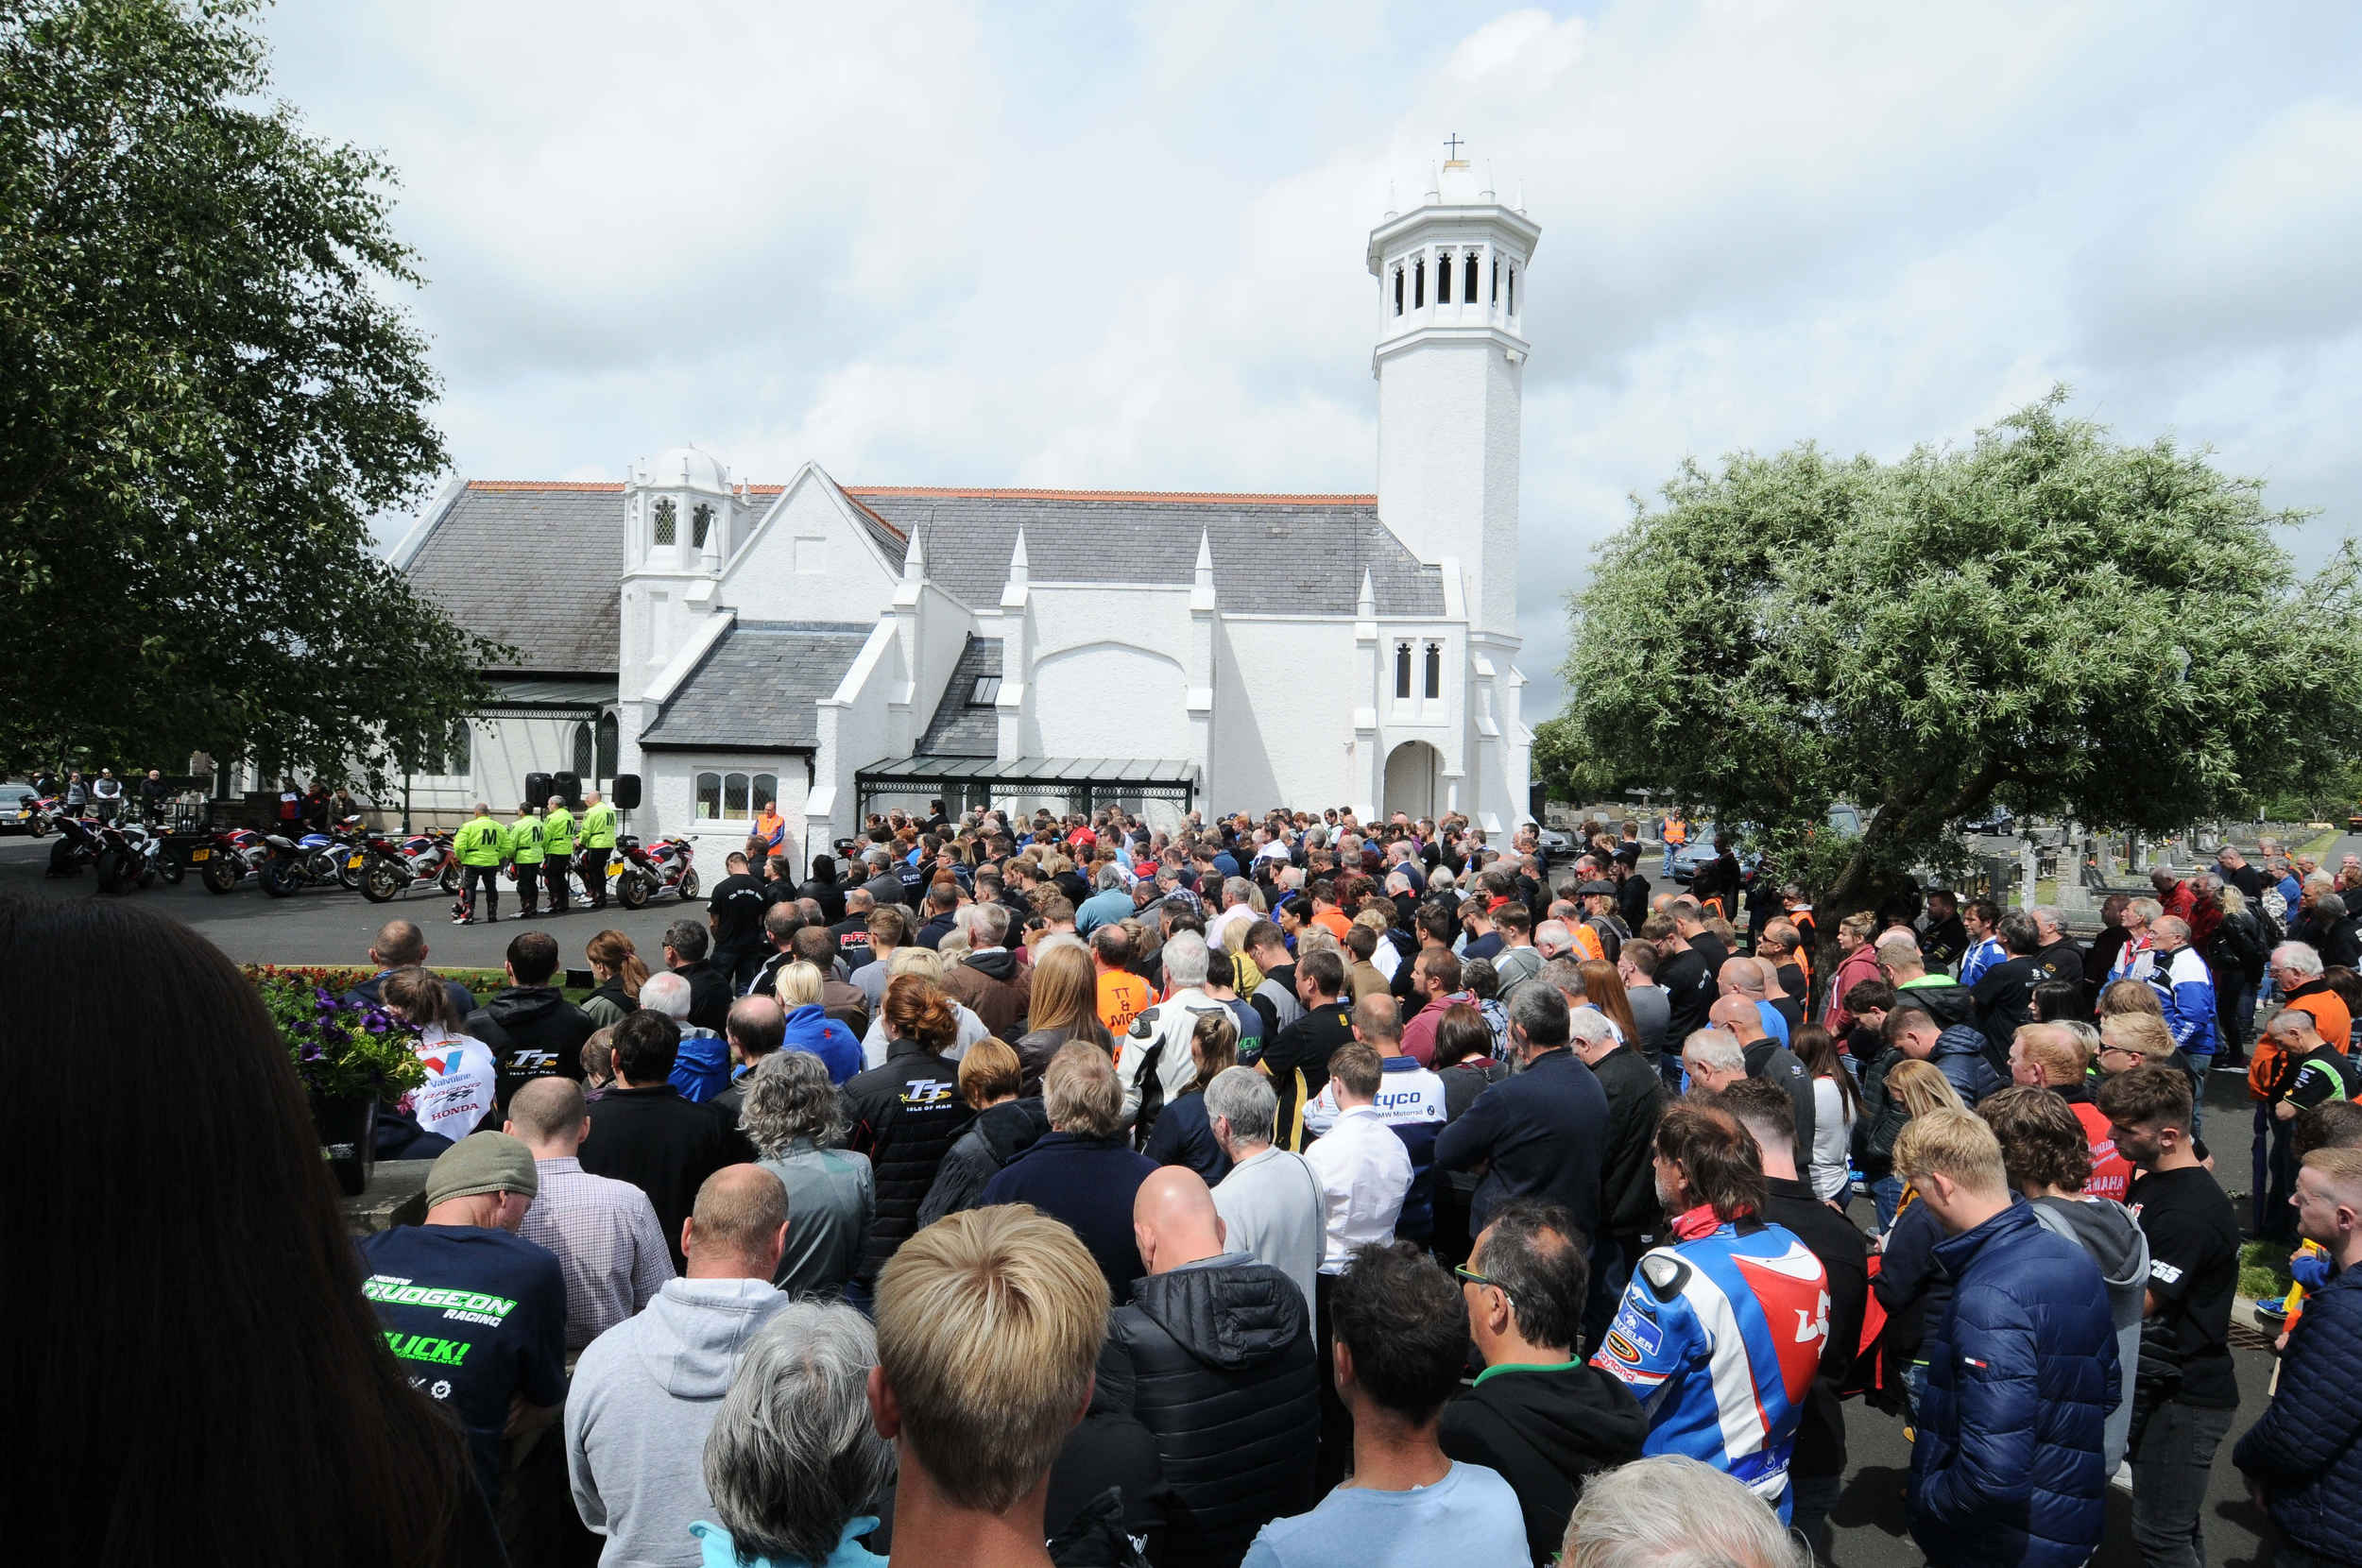 The funeral of Manx road racer Dan Kneen